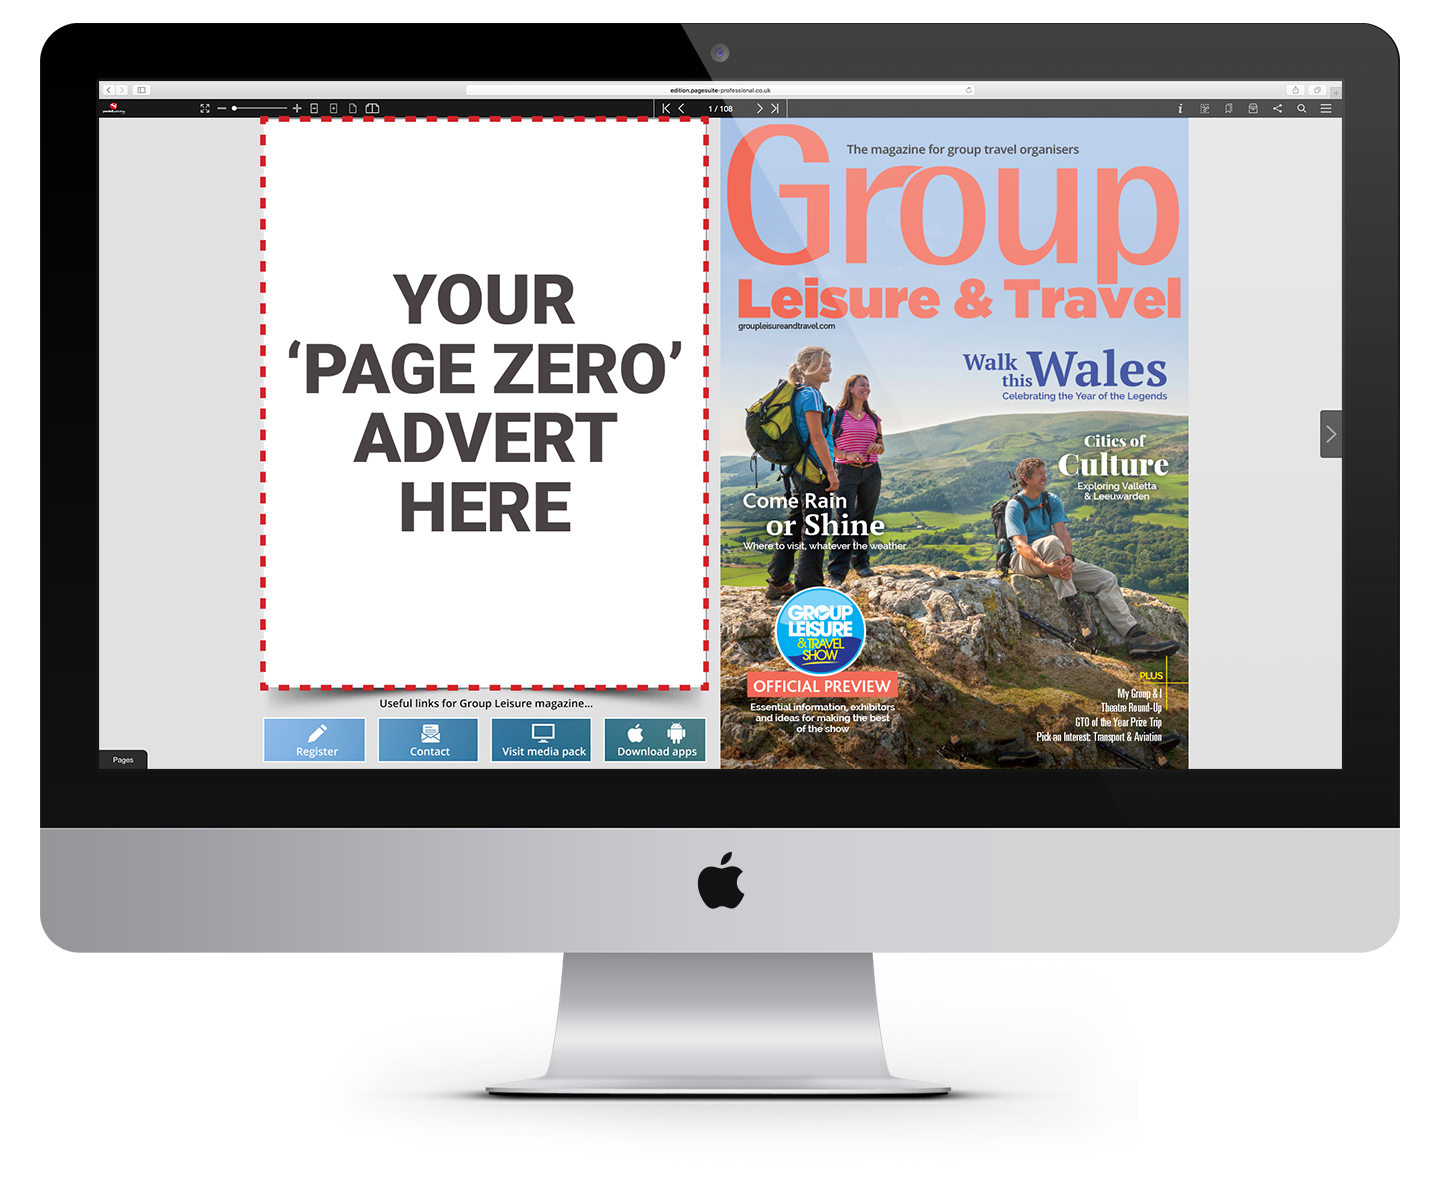 Group Leisure e-magazine 'Page Zero' placement